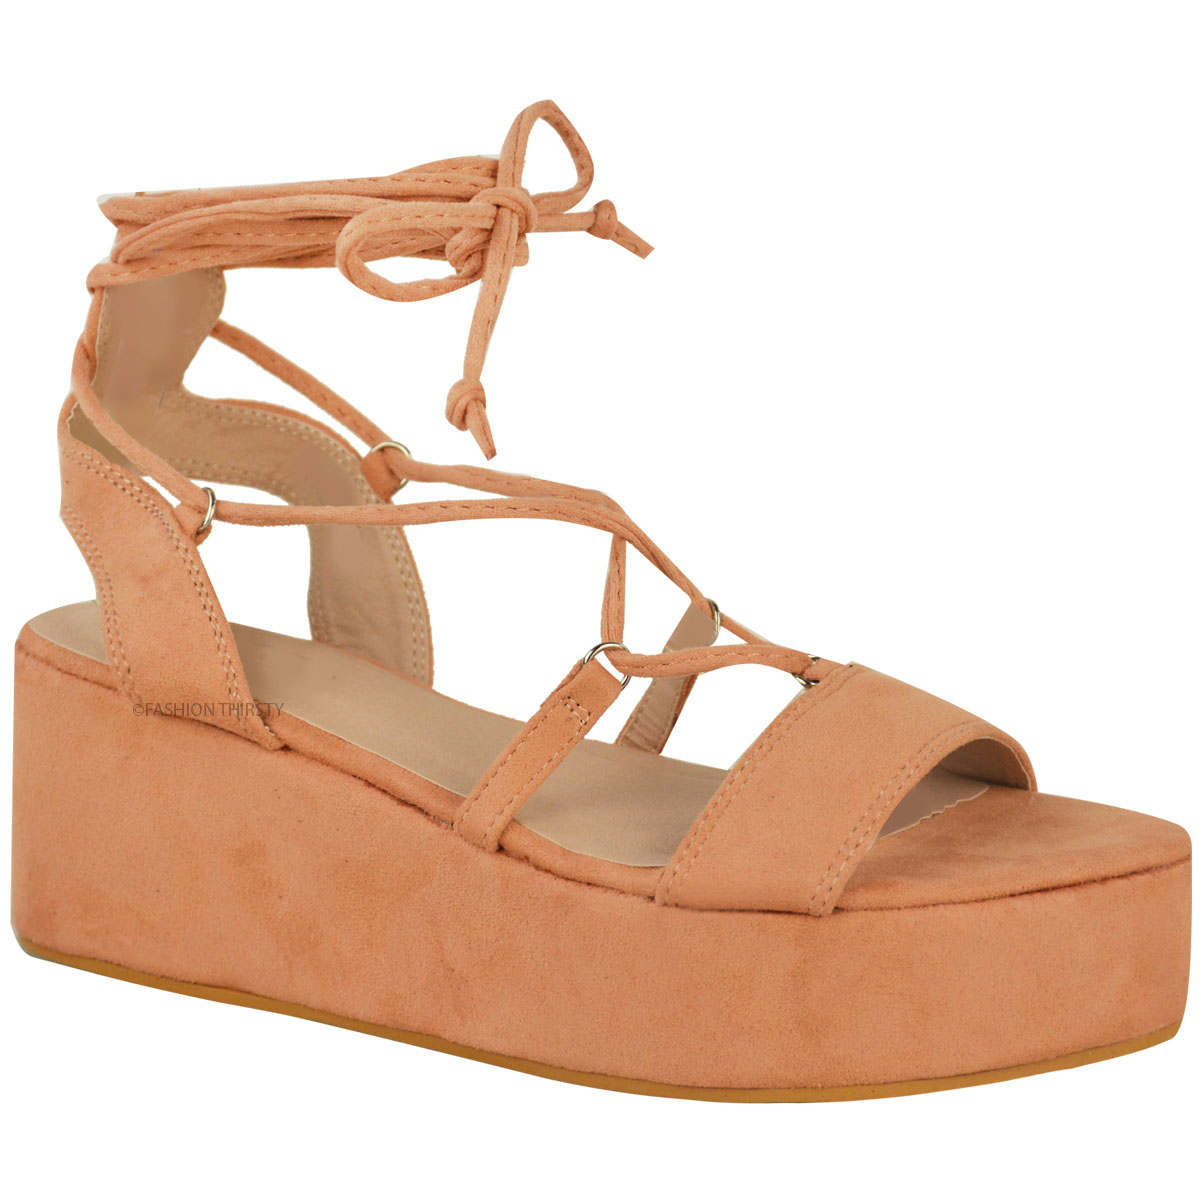 Sandals shoes holidays - New Womens Ladies Low Wedge Platform Sandals Strappy